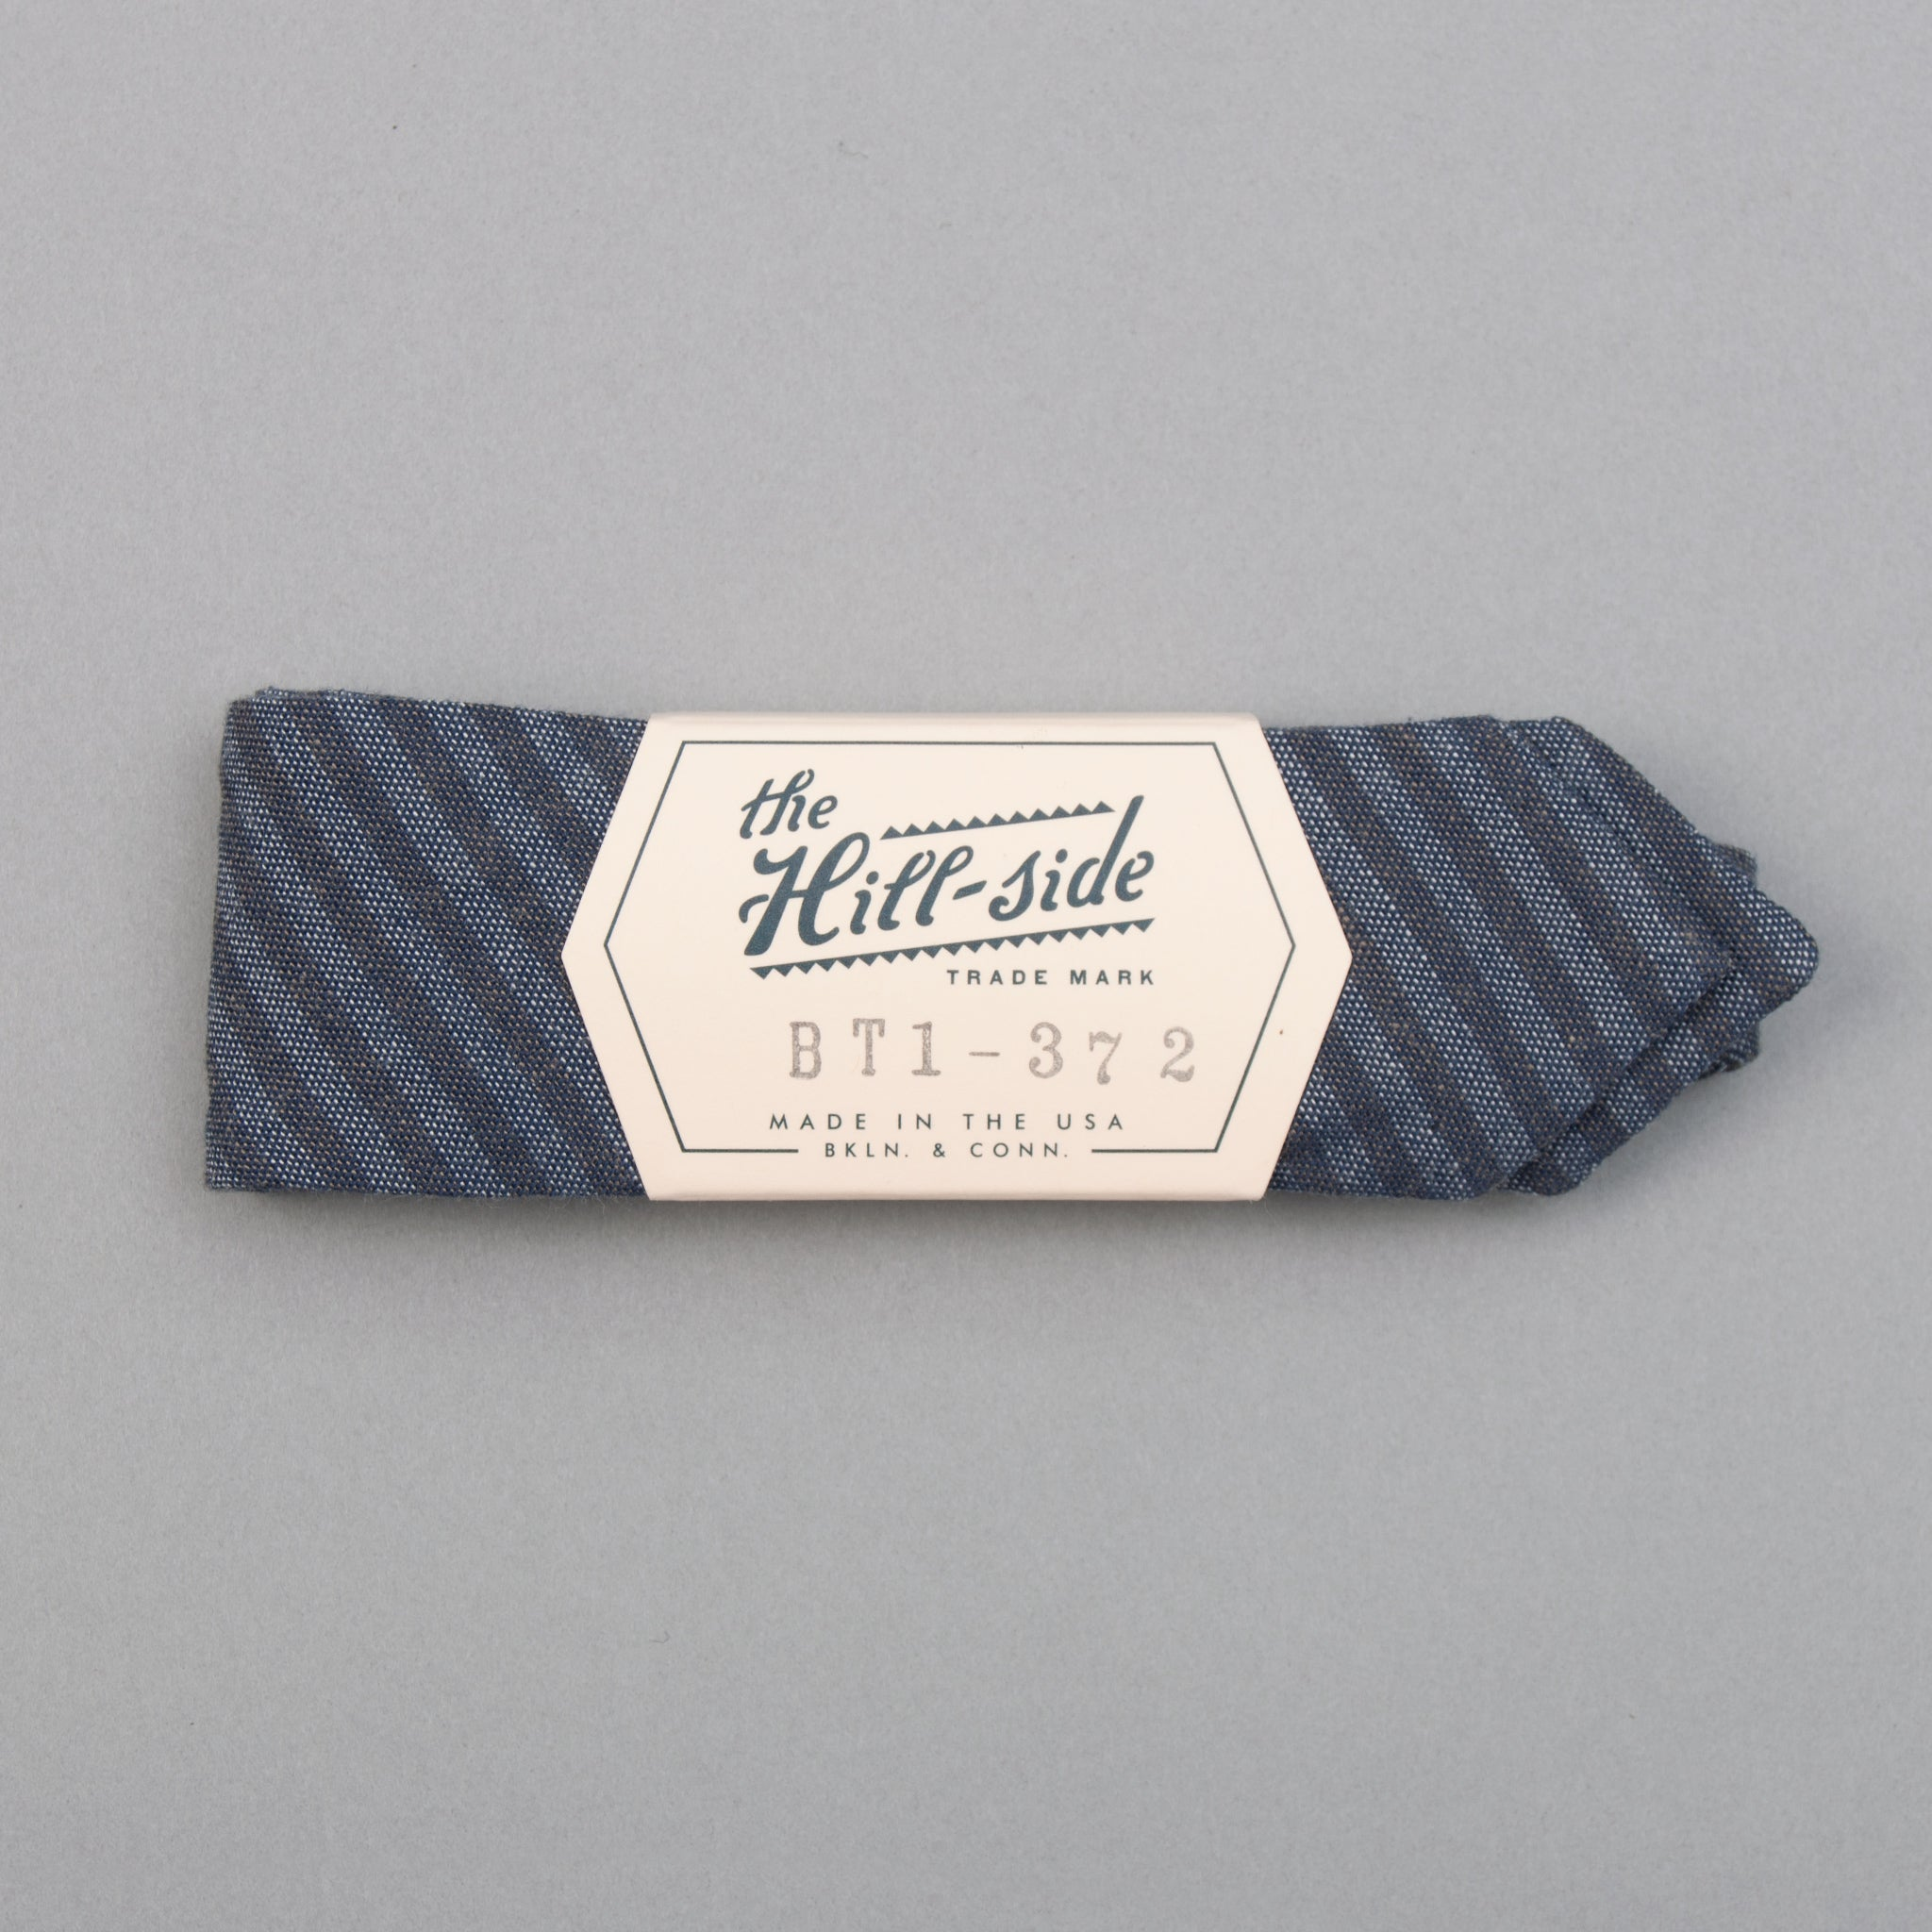 The Hill-Side - TH-S Mills Navy Warp Bow Tie, Hickory Stripe - BT1-372 - image 1